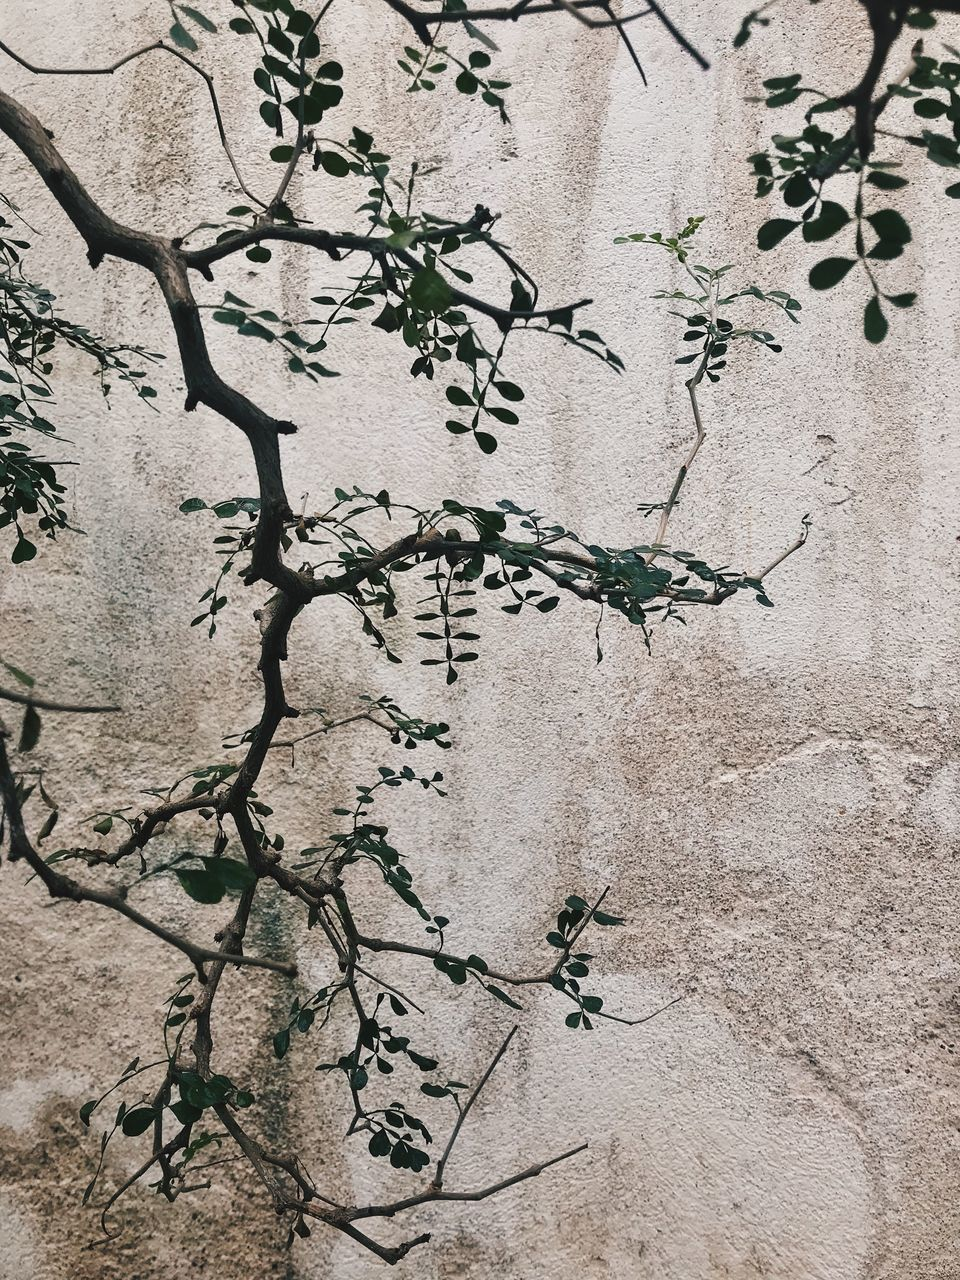 plant, growth, no people, wall - building feature, day, nature, built structure, tree, architecture, plant part, close-up, leaf, beauty in nature, outdoors, wall, full frame, branch, textured, sunlight, pattern, concrete